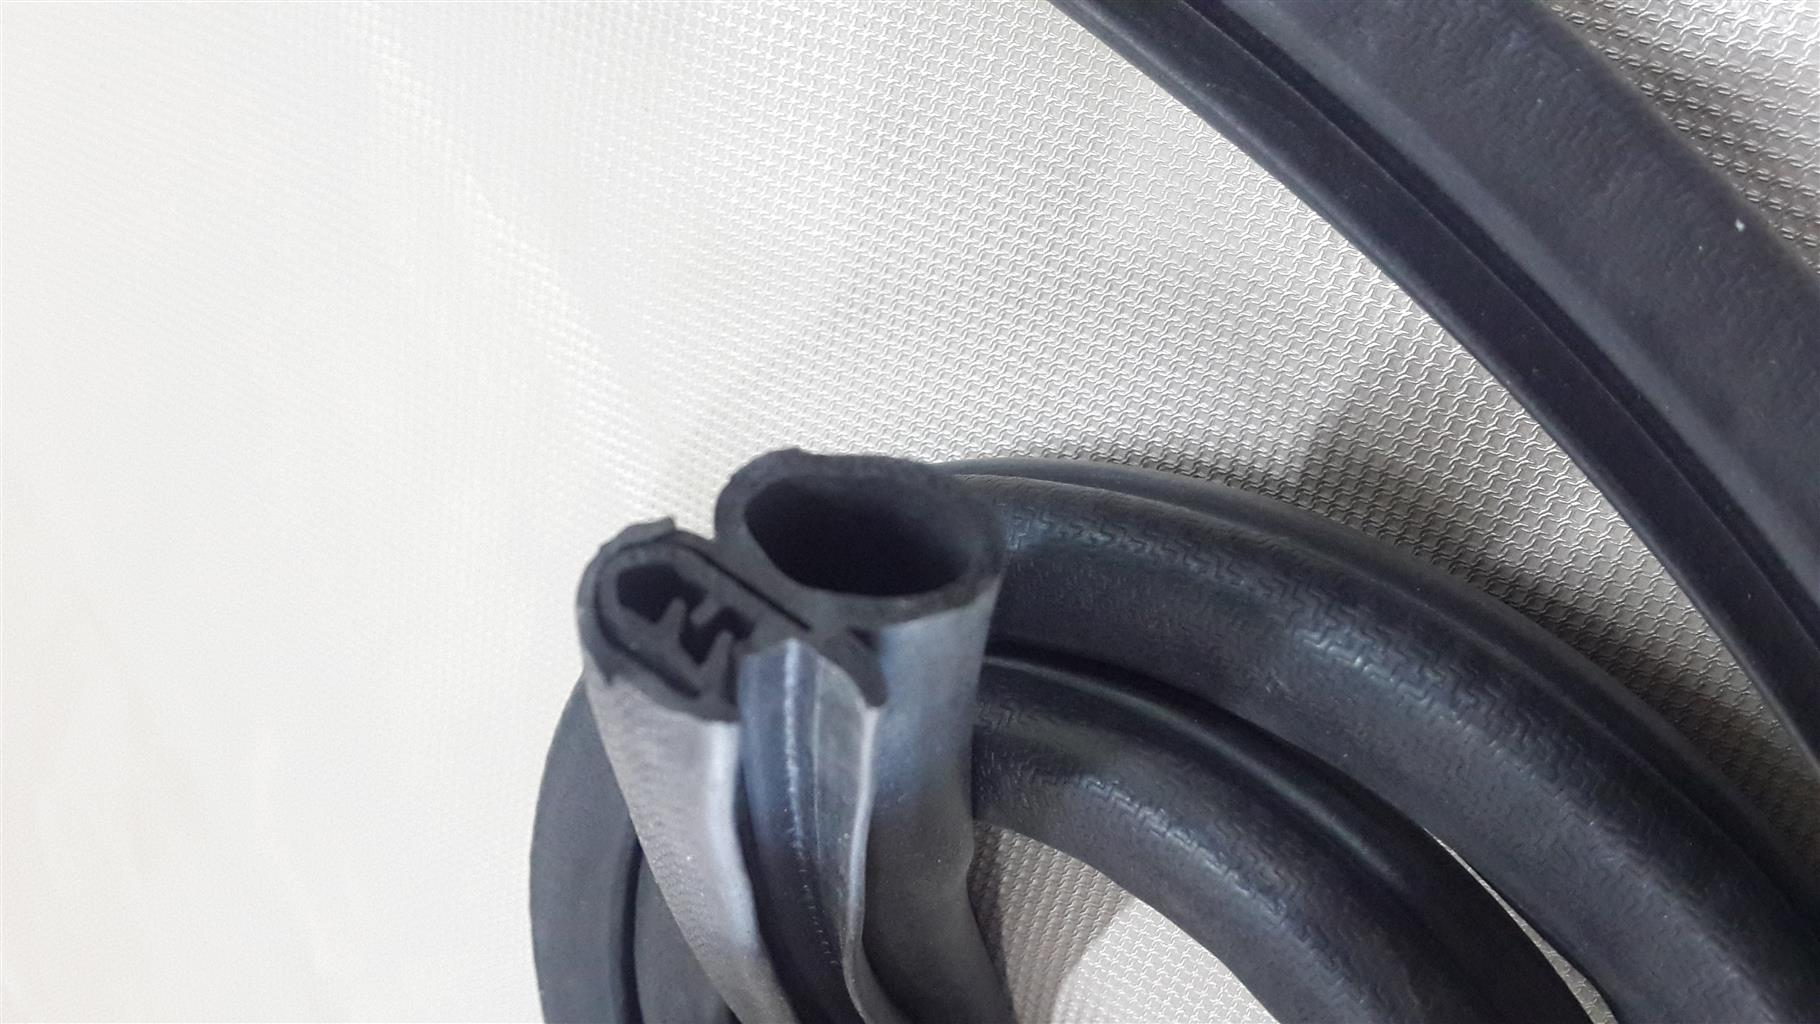 Automotive rubbers and clips for car doors, windows, garage etc